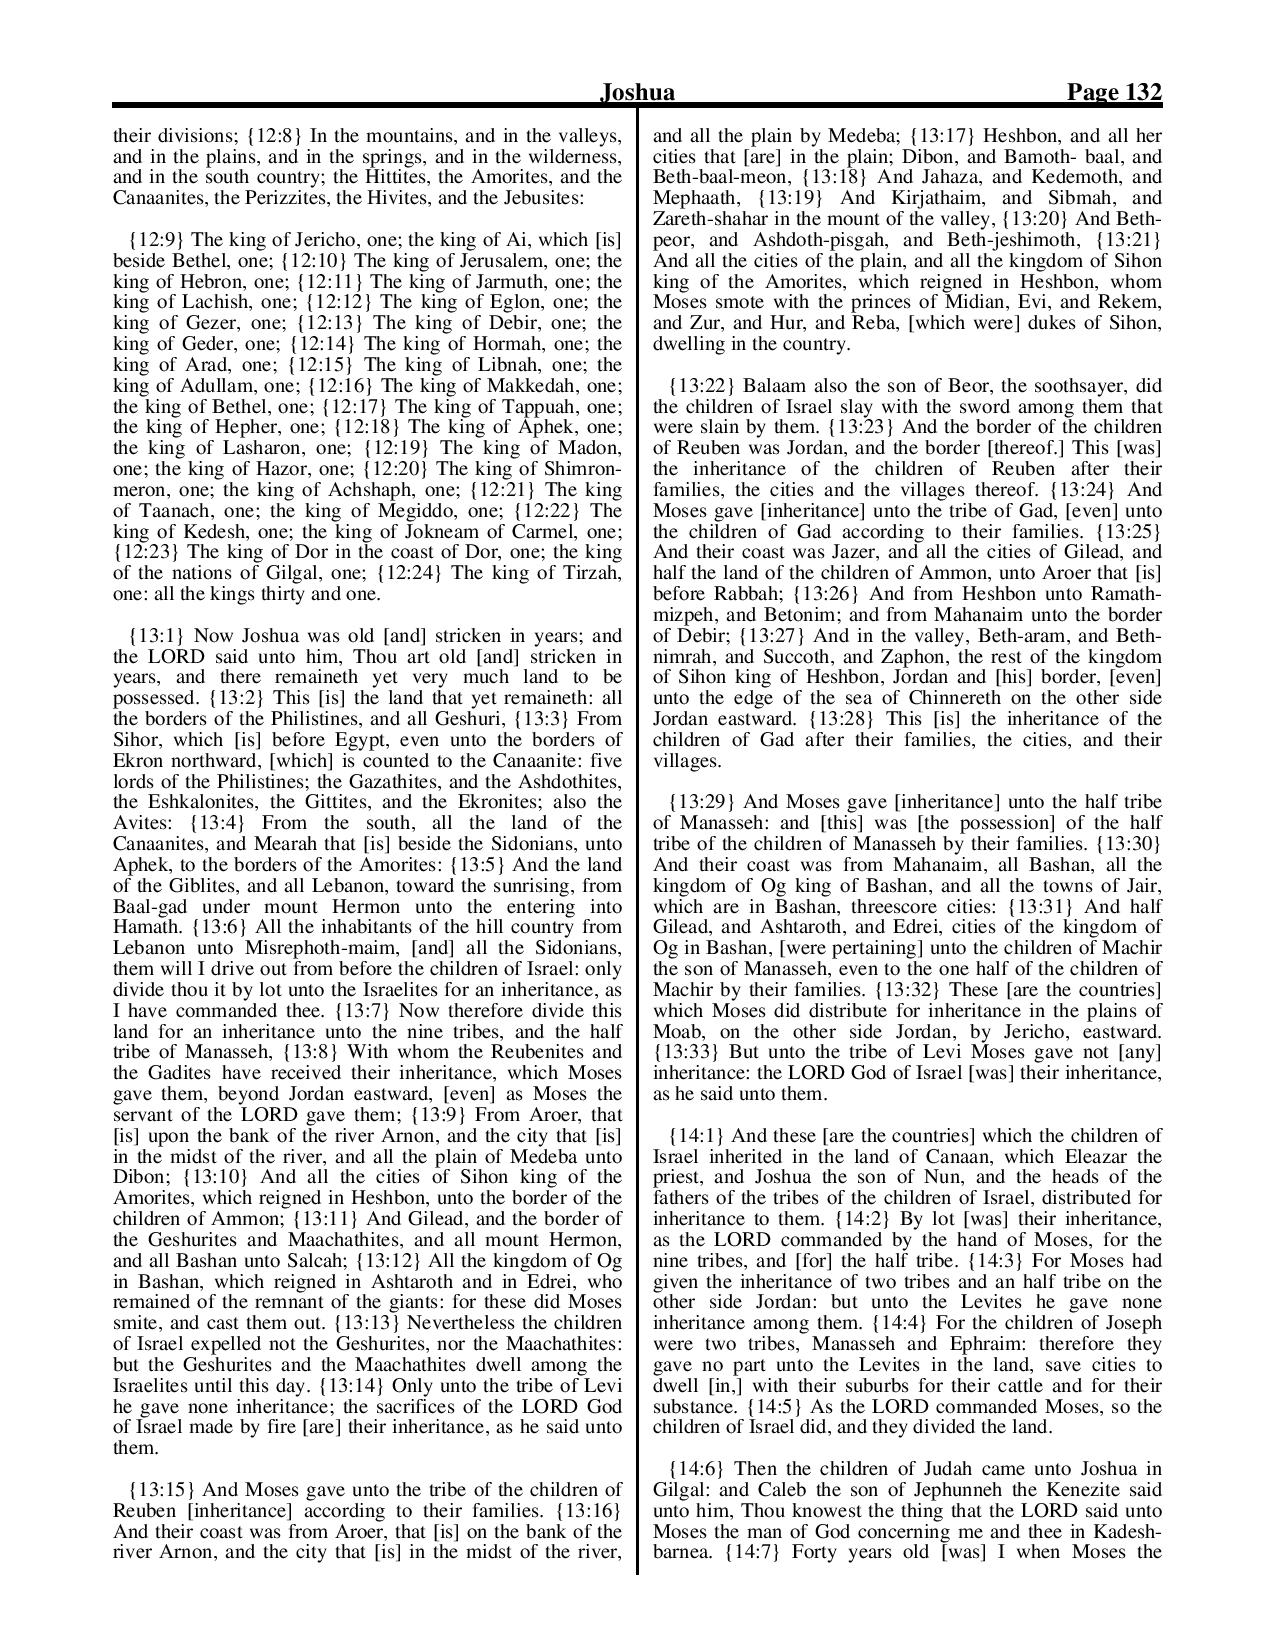 King-James-Bible-KJV-Bible-PDF-page-153